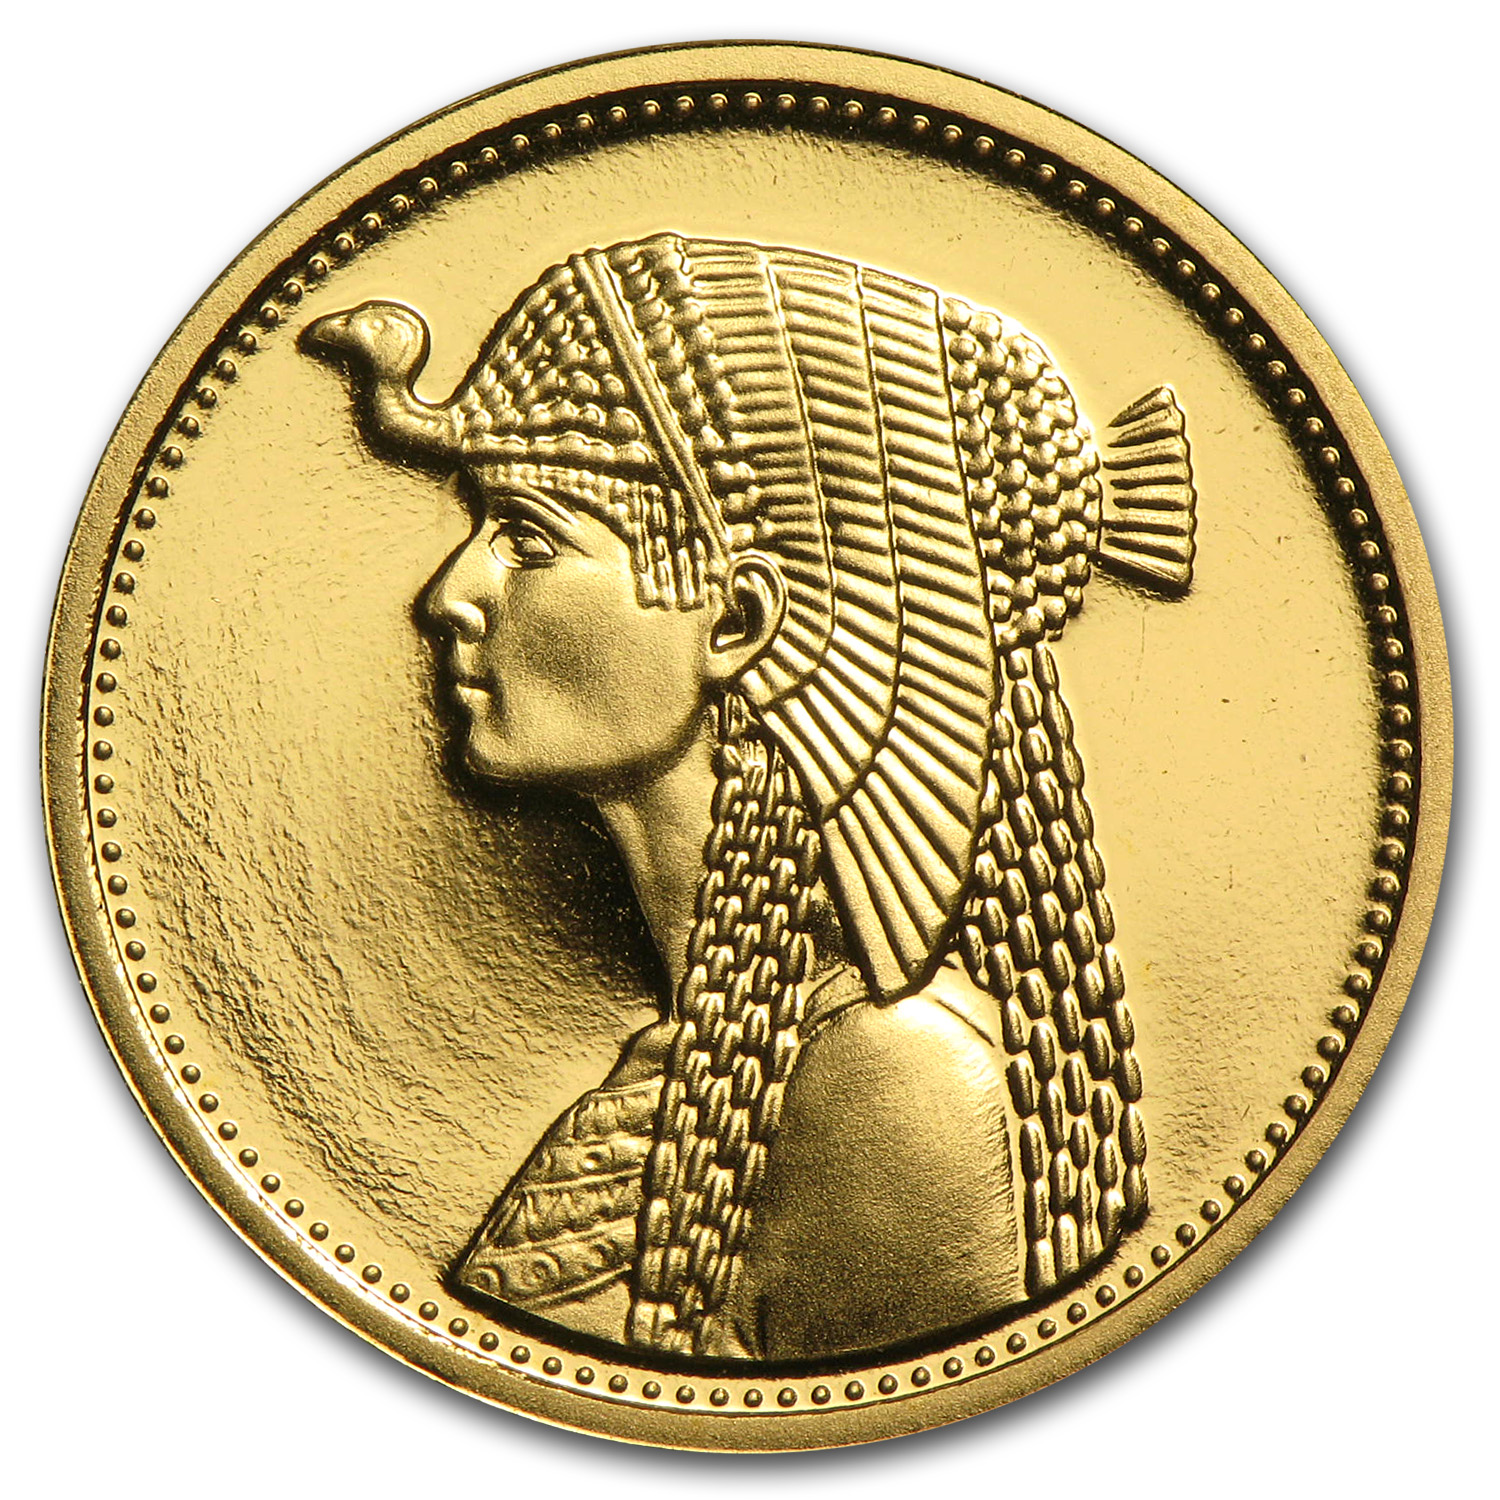 Ah1414 1993 Egypt Proof Gold 50 Pound Cleopatra Gold